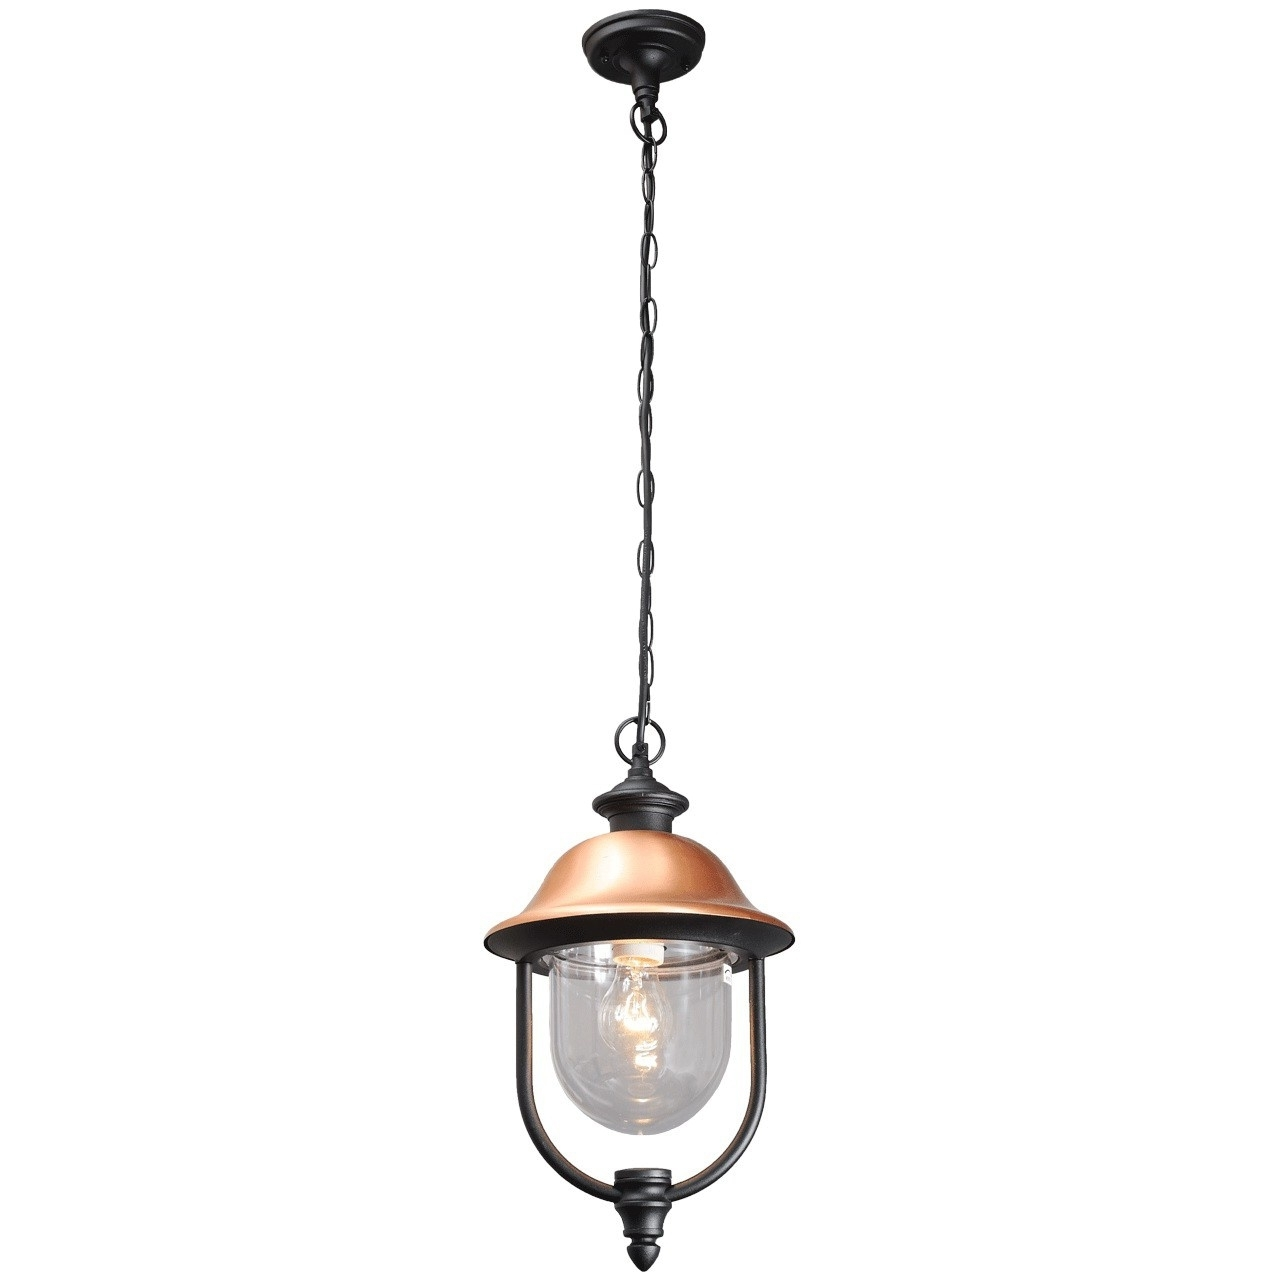 Lighting : Rustic Outdoor Pendant Lighting Kichler 2713Ob One Light Pertaining To Most Recently Released Rustic Outdoor Hanging Lights (View 11 of 20)